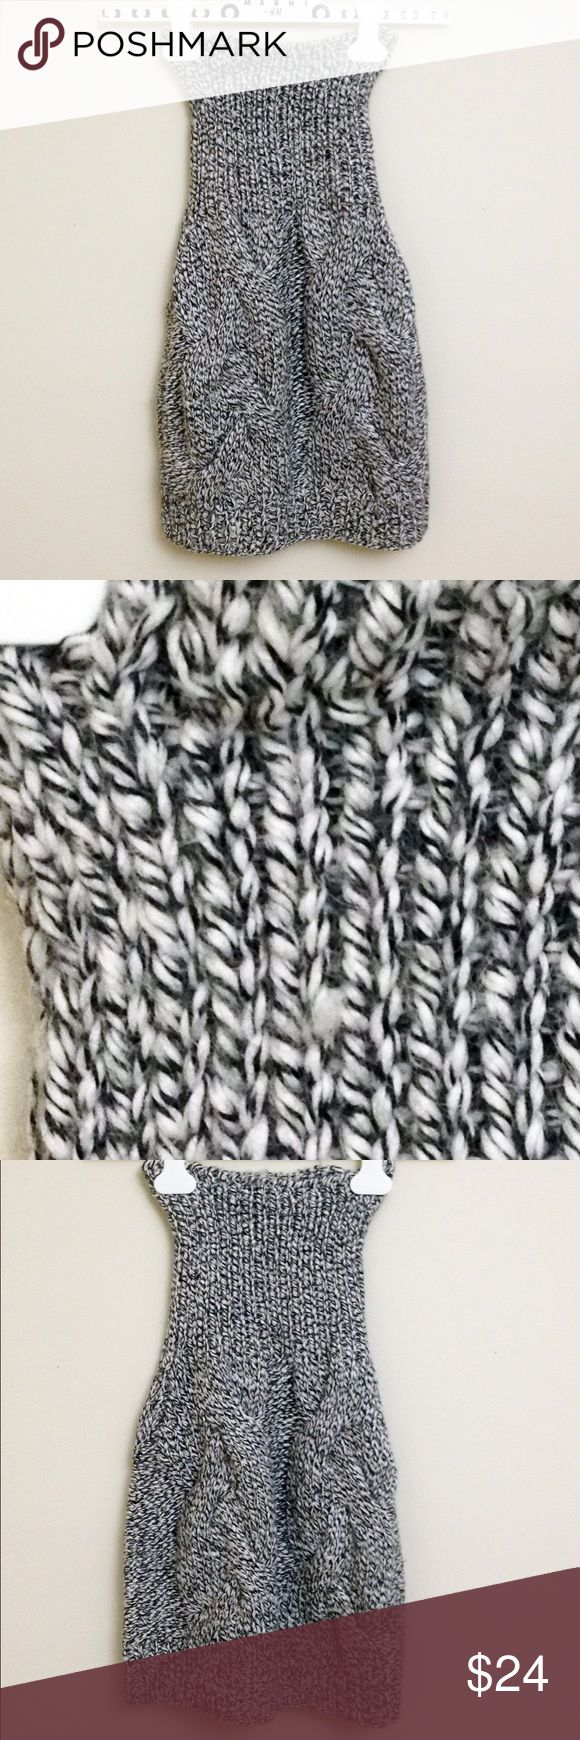 H&M TREND Chunky Braided Cable Wool Knit Skirt H&M TREND chunky black and white Braided Cable wool knit skirt with a high-waisted Fisherman's Rib stitch. 23 in. long; could also be worn as a top. A little snag on the right on the waist. No-light wear. Made in China. 60% acrylic, 40% alpaca. Machine wash in wool program or hand wash cold with mild detergent. Only non-chlorine bleach. Dry flat. Medium iron or dry clean. H&M Skirts Mini